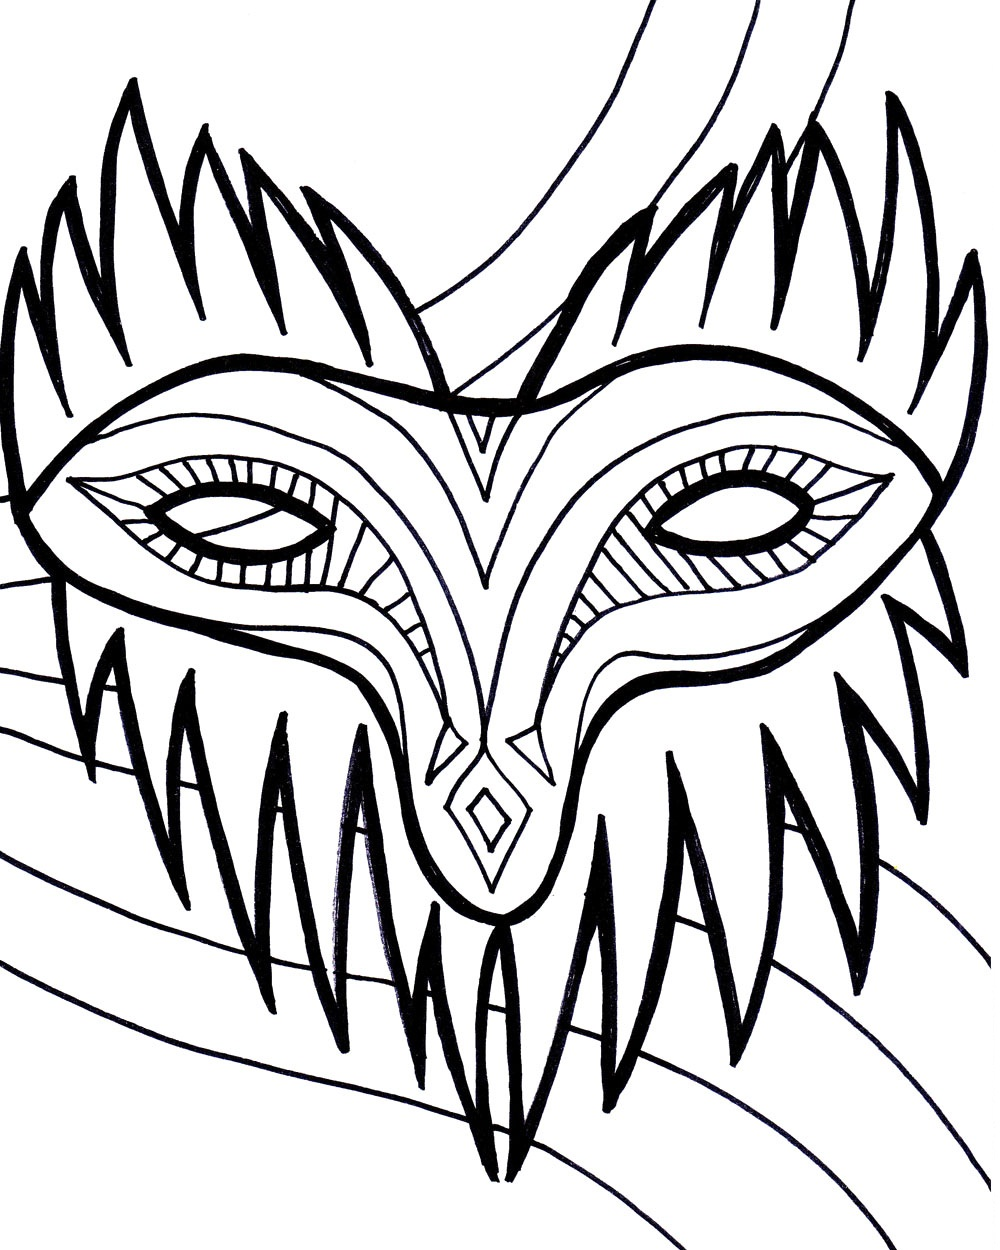 Coloring Pages Mardi Gras Color Pages free printable mardi gras coloring pages for kids mask pages